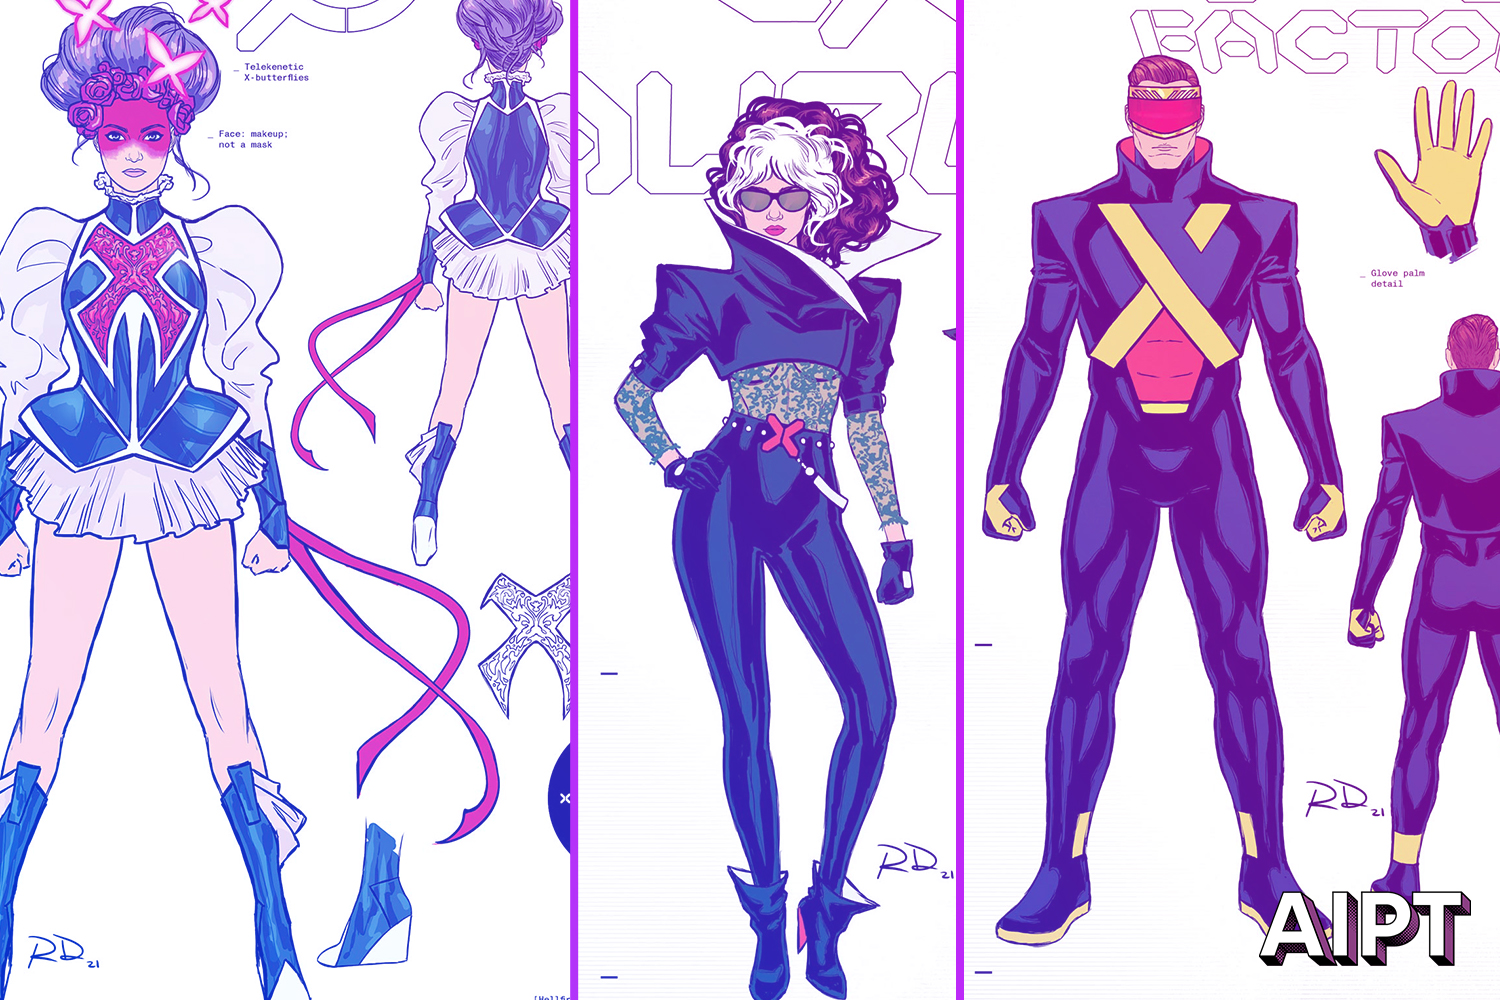 Marvel's X-Men are looking snazzy for the 'Hellfire Gala' in new Russell Dauterman costume designs